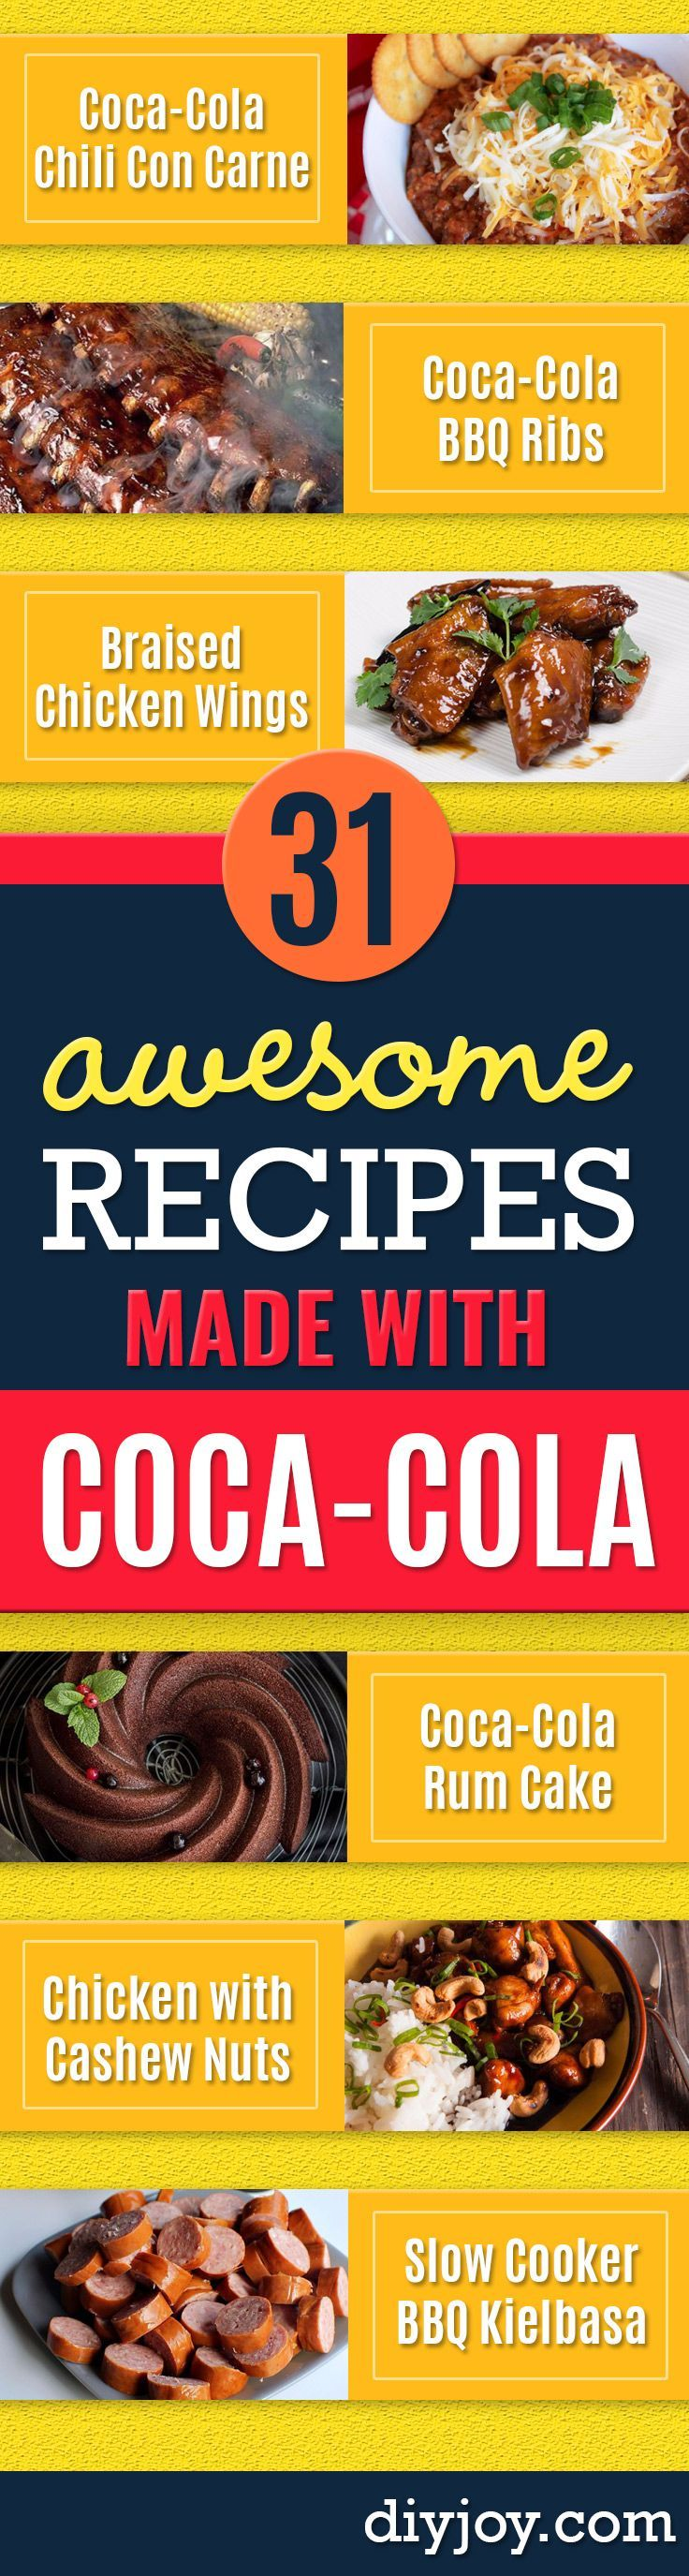 Best Coca Cola Recipes - Make Awesome Coke Chicken, Coca Cola Cake, Meatballs, Sodas, Drinks, Sweets, Dinners, Meat, Slow Cooker and Recipe Ideas With Cake Mixes - Fun Food Projects For Families and Parties With Step By Step Tutorials http://diyjoy.com/coca-cola-recipes